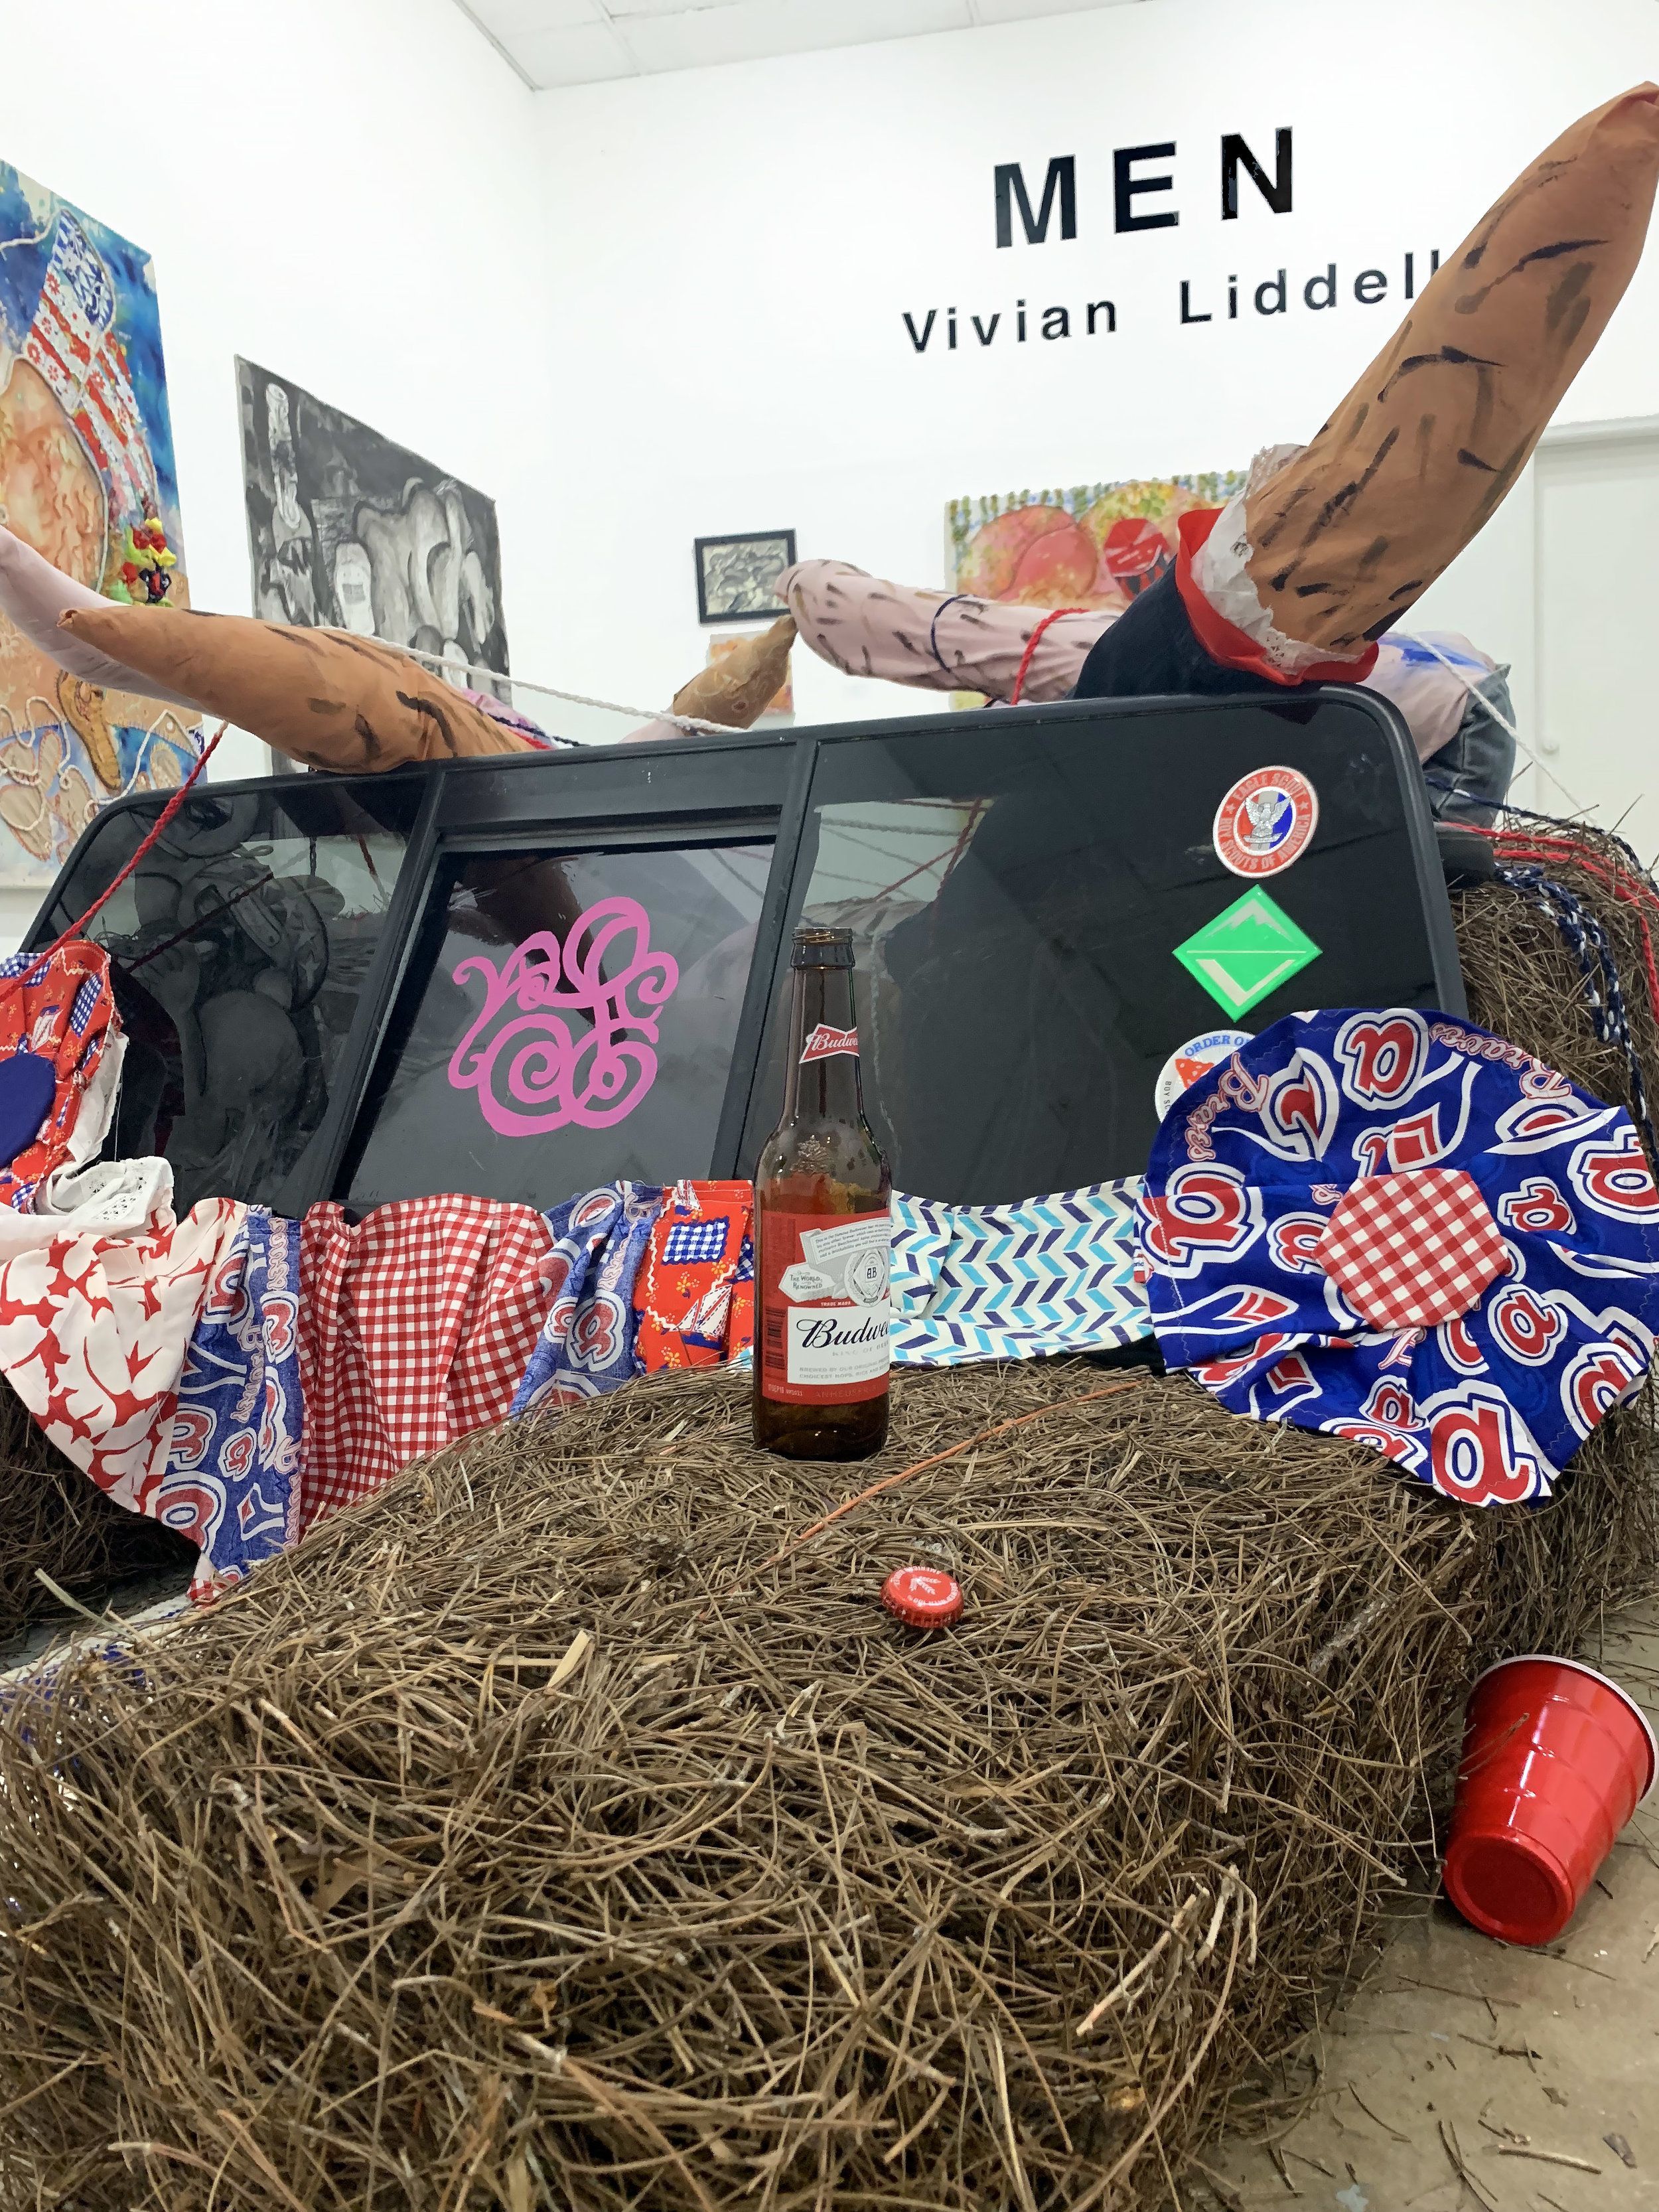 Installation view of Make a (Ma)MAN II: Independence Day at 621 Gallery, Tallahassee, FL, 2019.